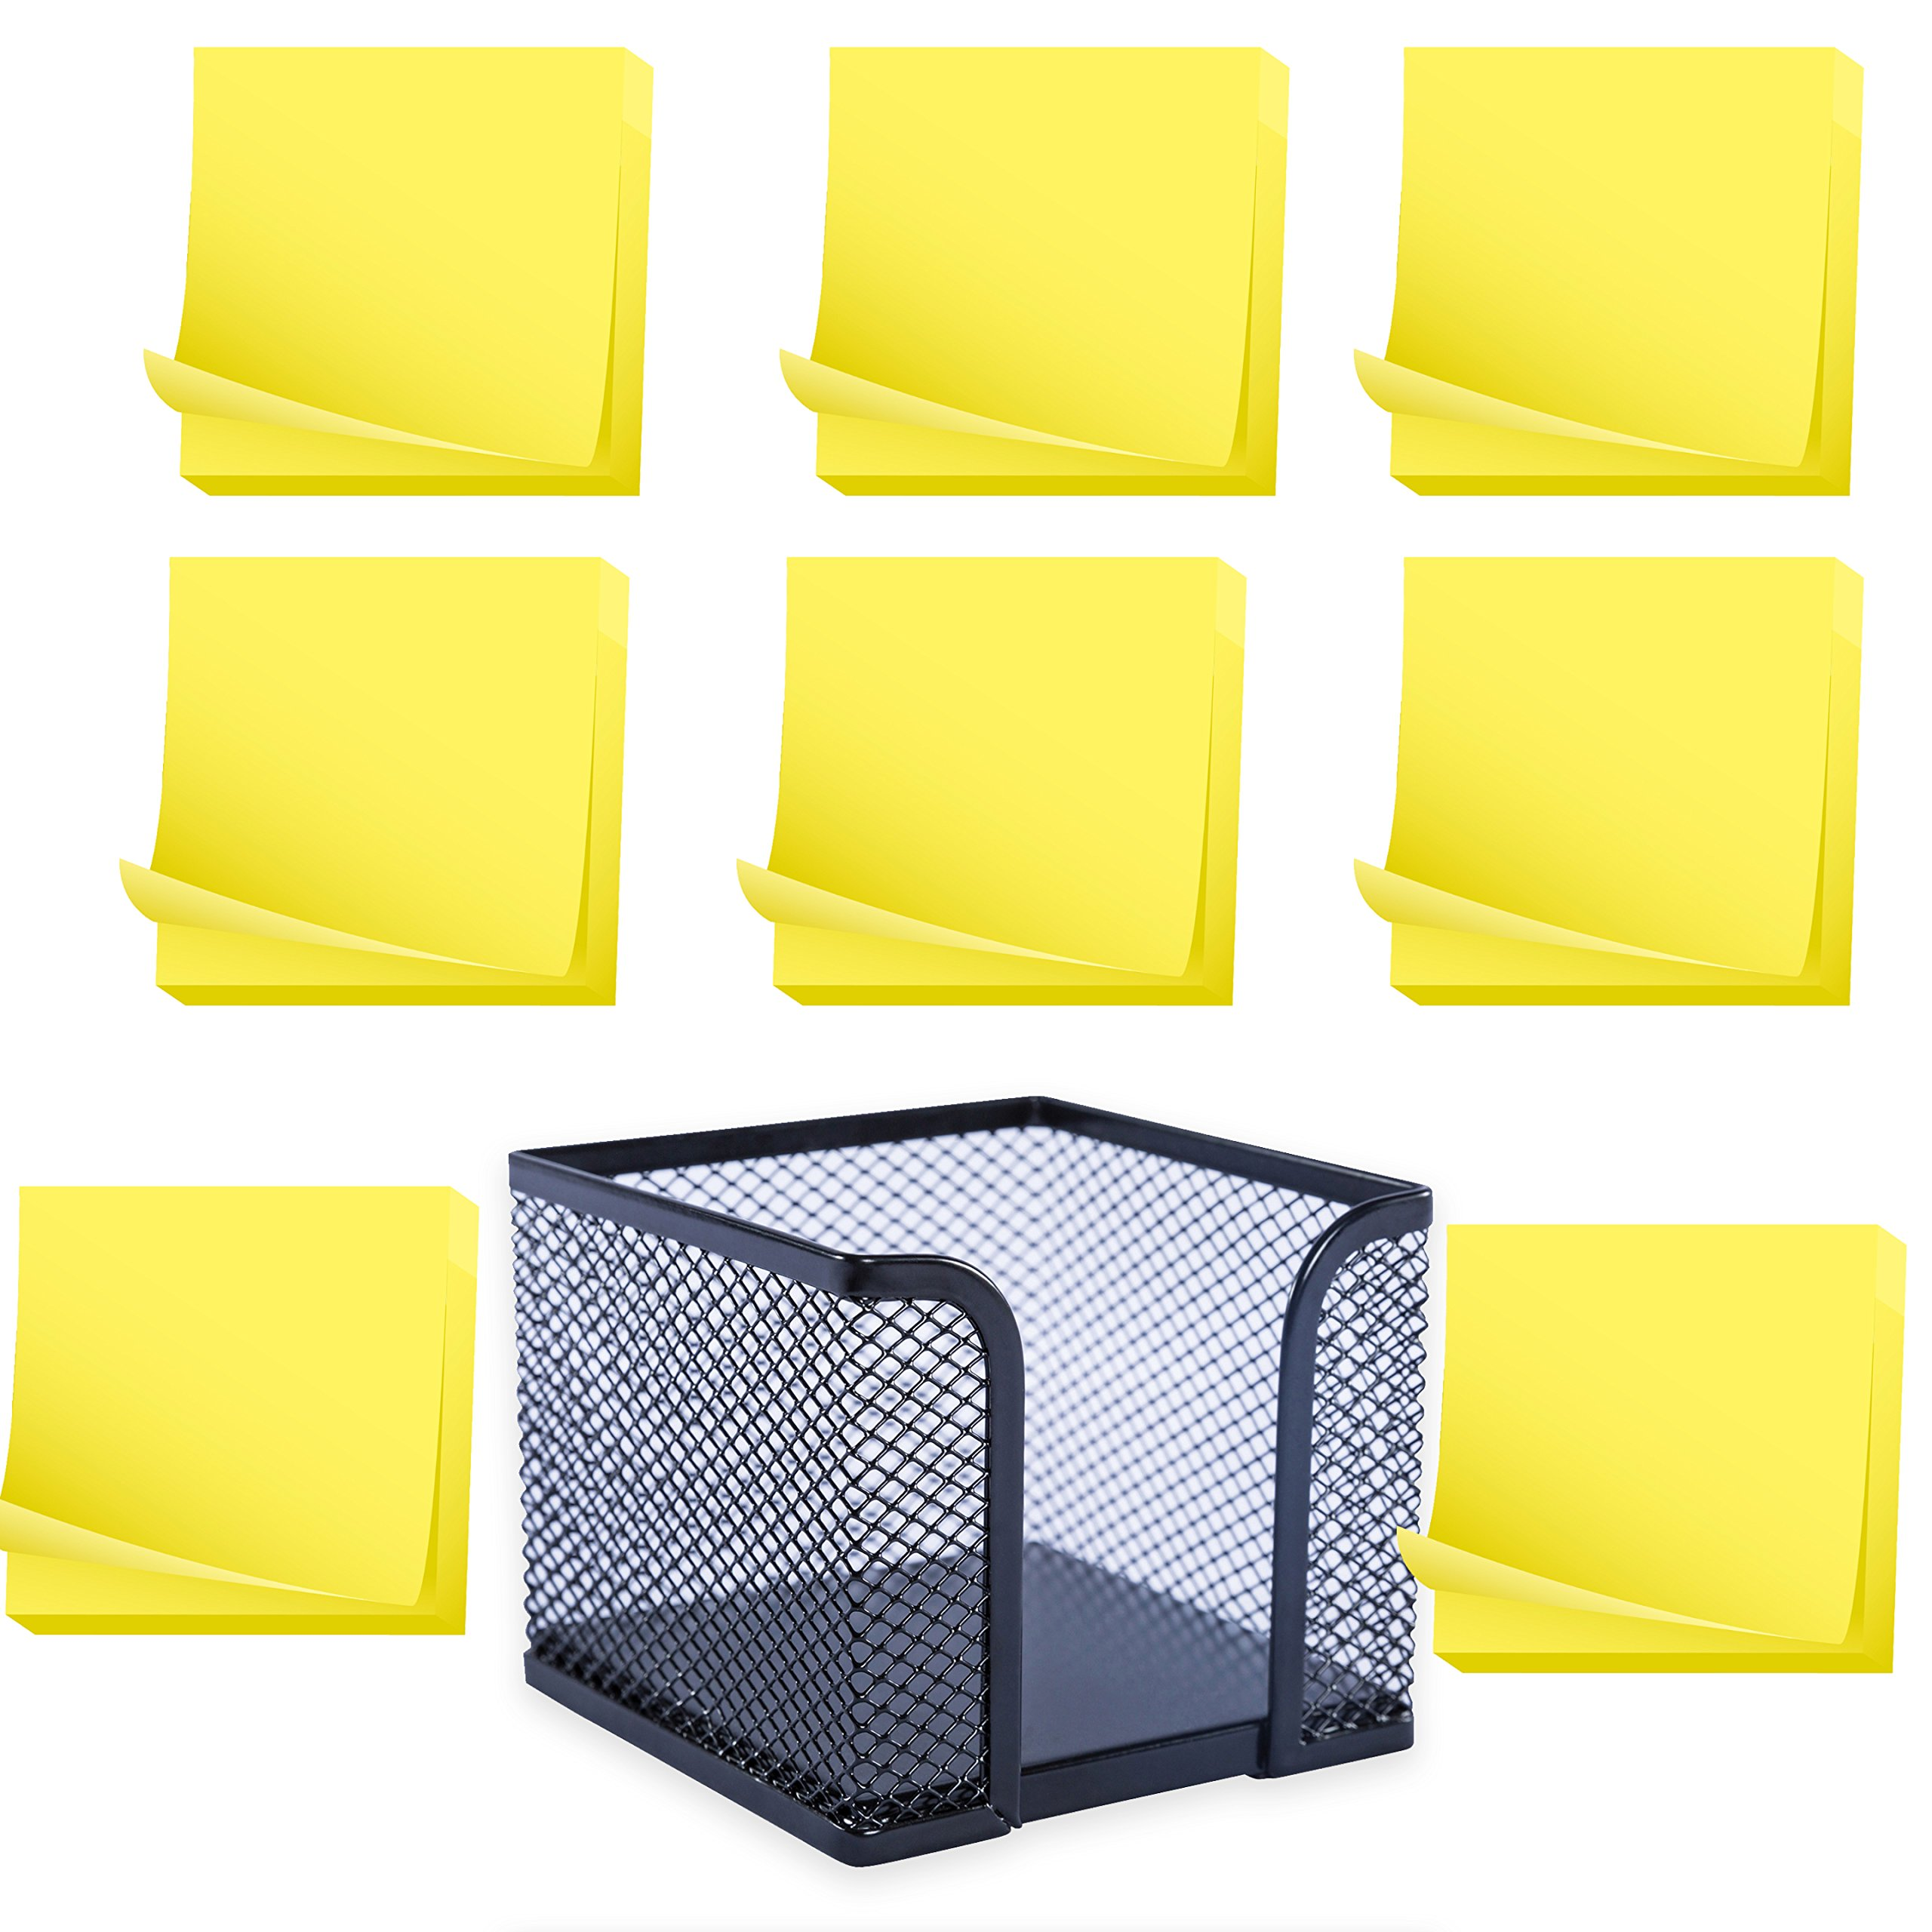 Memo Holder, Steel Mesh Sticky Notes Dispenser - with 12 Pads Adhesive Sticky Notes, Yellow - 3x3 inch - Total of 1200 Sheets - Value Set by Klingy